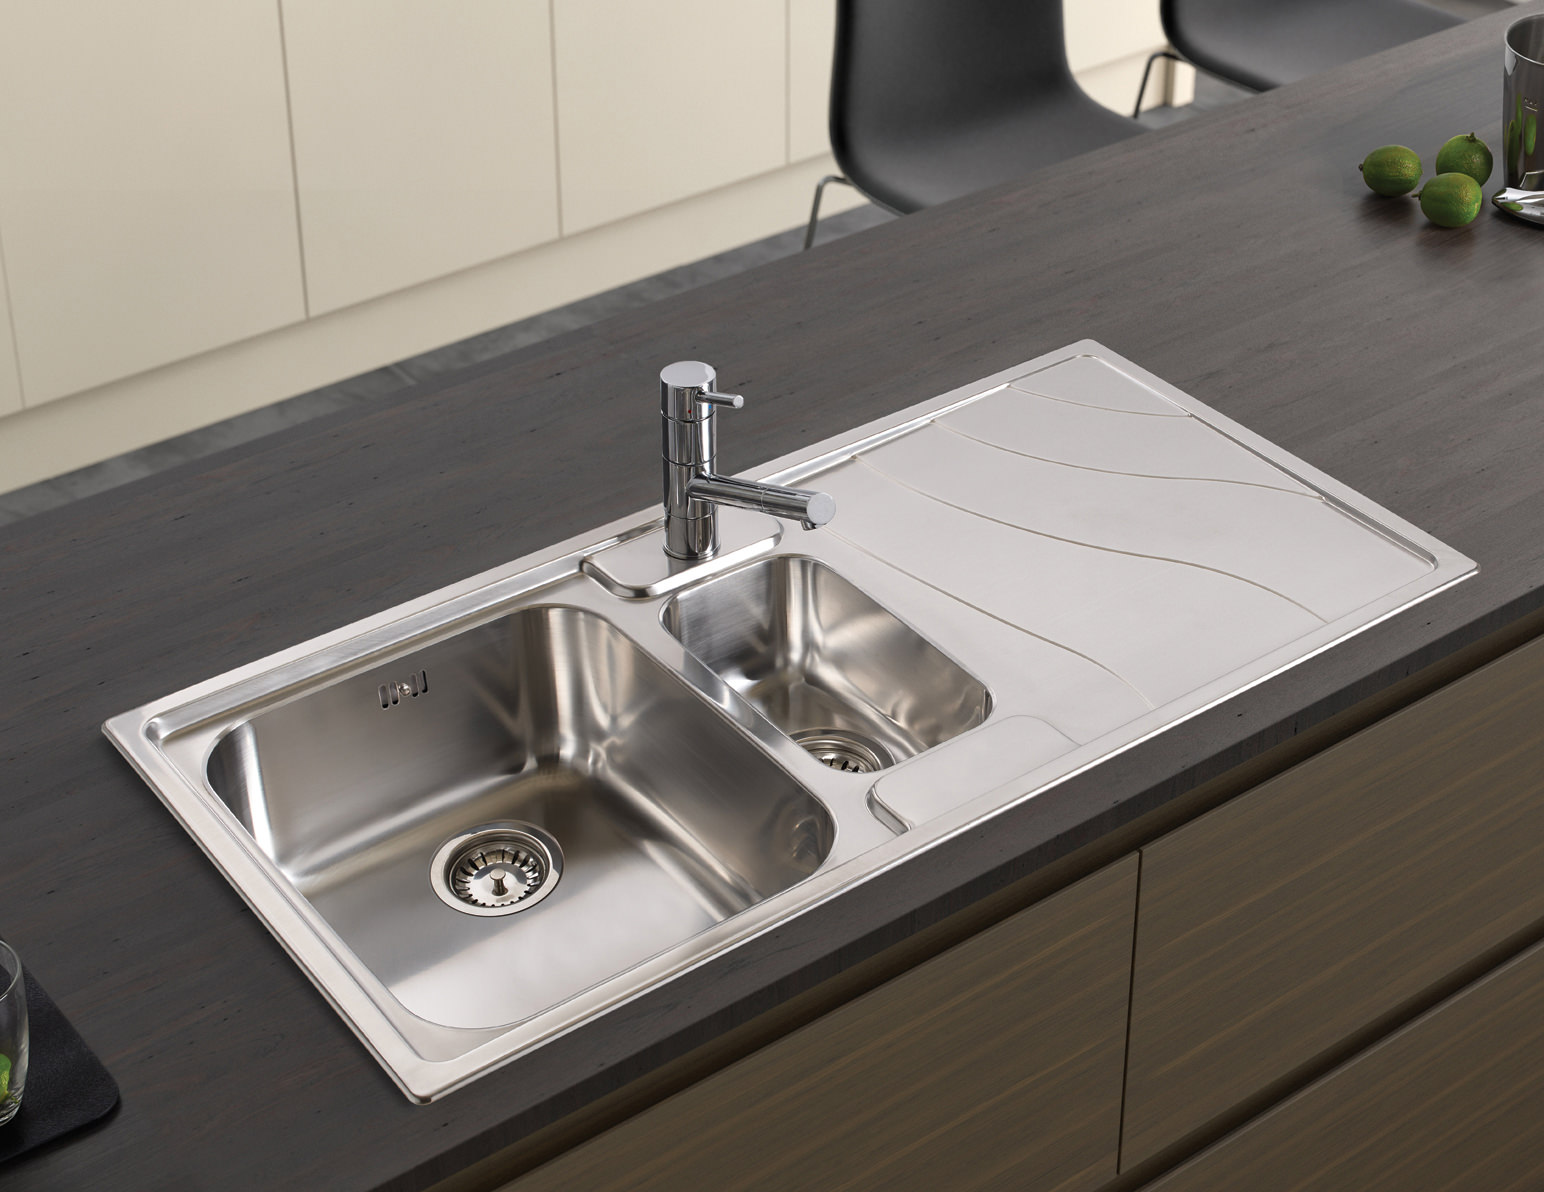 Inset Bathroom Sink Bowl : ... inset sink 1 5 bowl features astracast ocean kitchen sink drainer